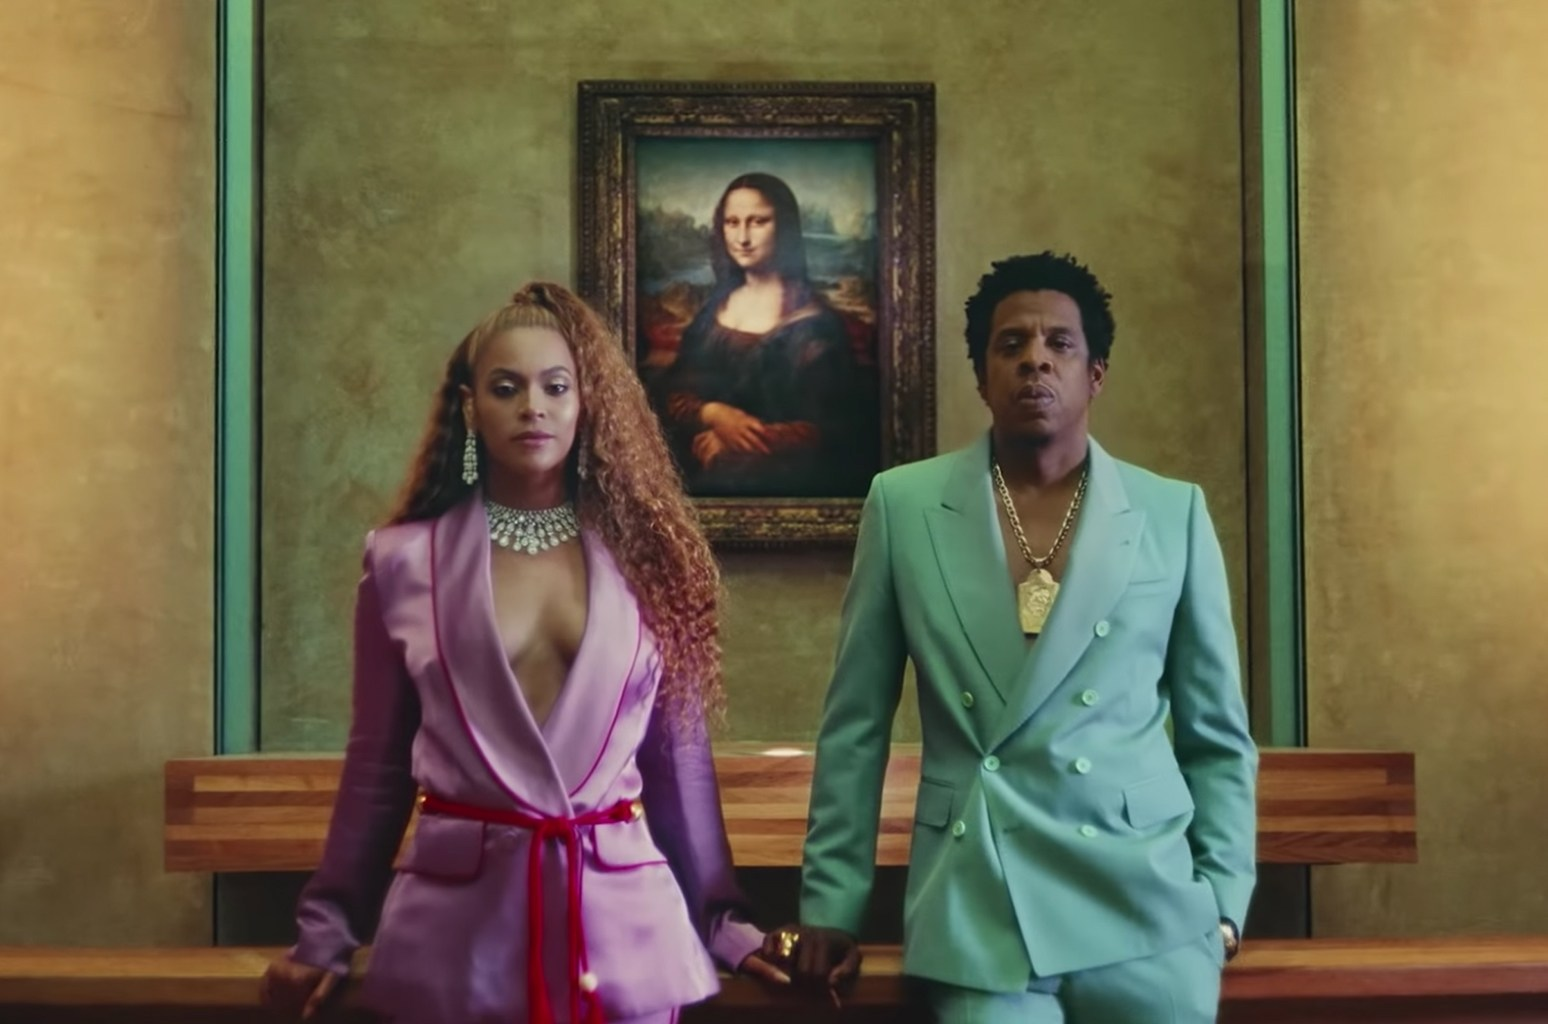 beyonce-jay-z-the-carters-mv-vid-2018-billboard-1548